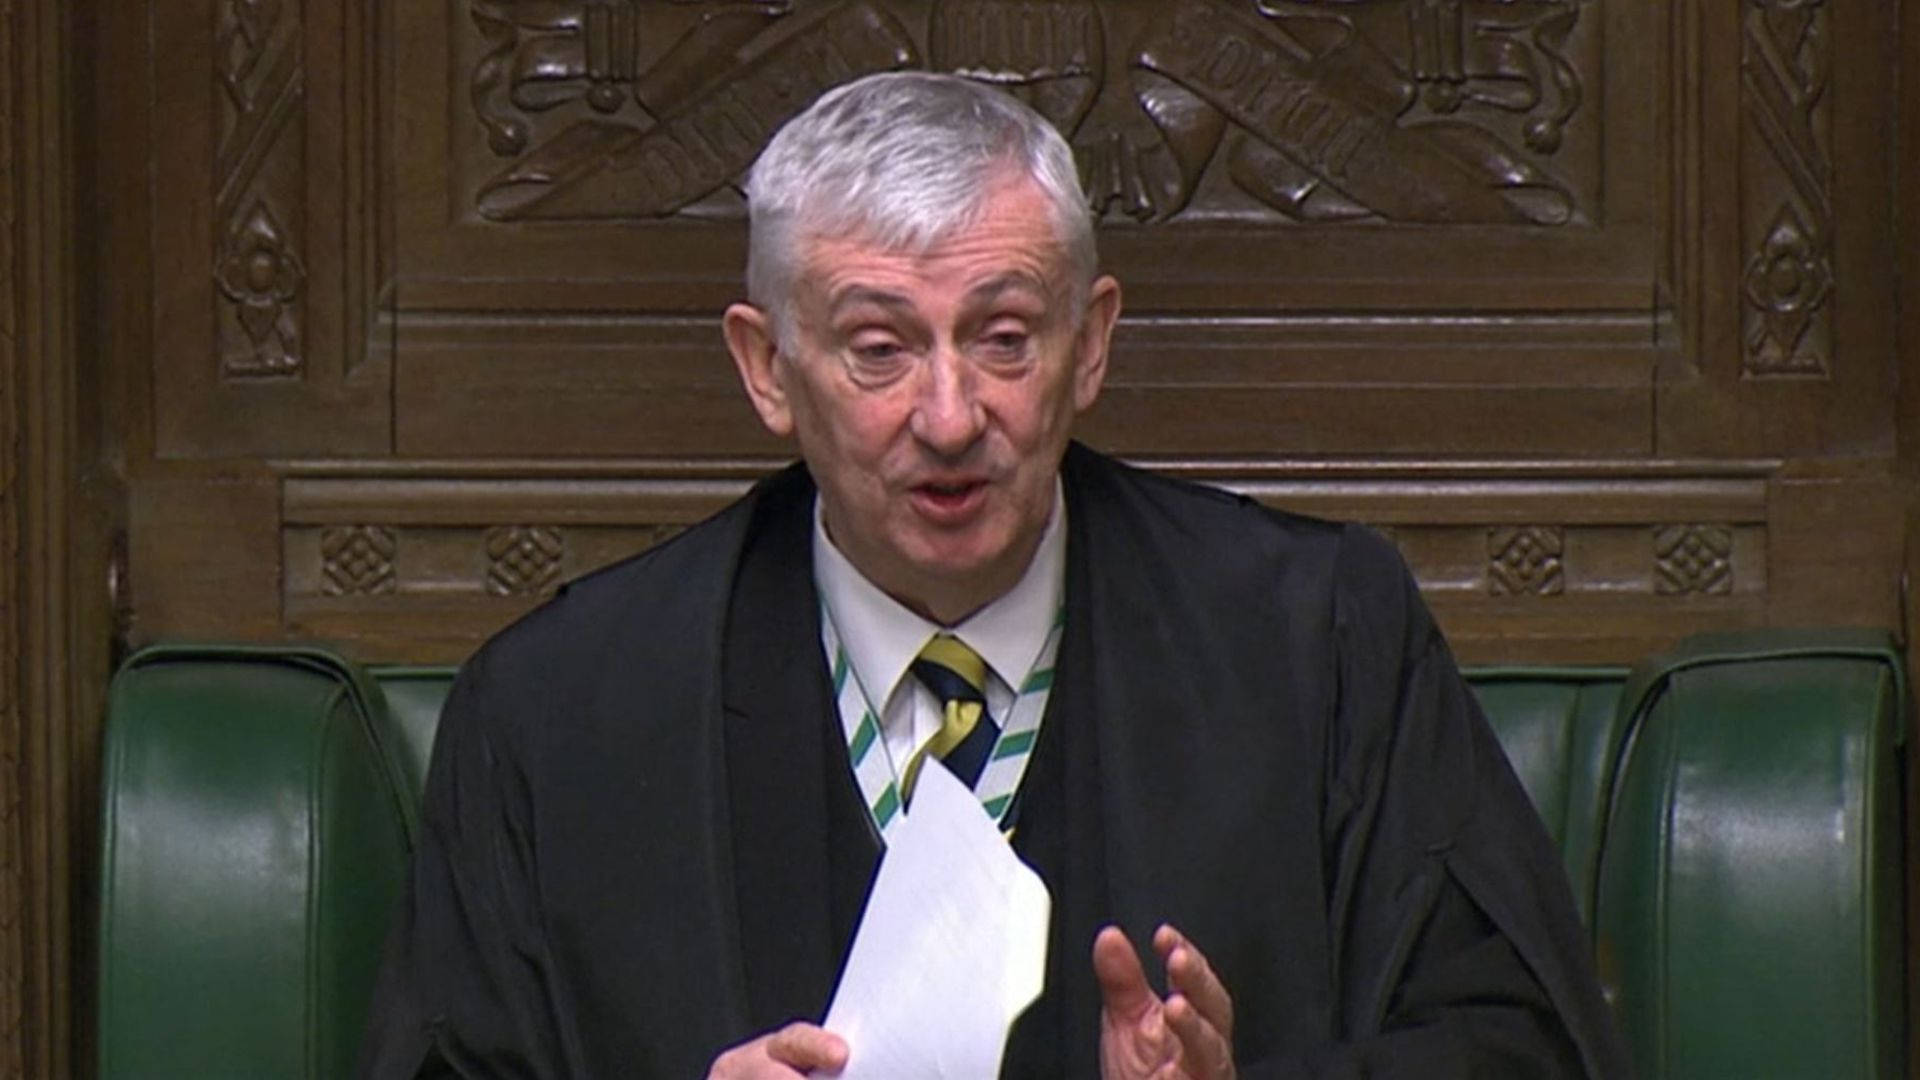 Speaker of the House of Commons Sir Lindsay Hoyle during the debate in the House of Commons - Credit: PA